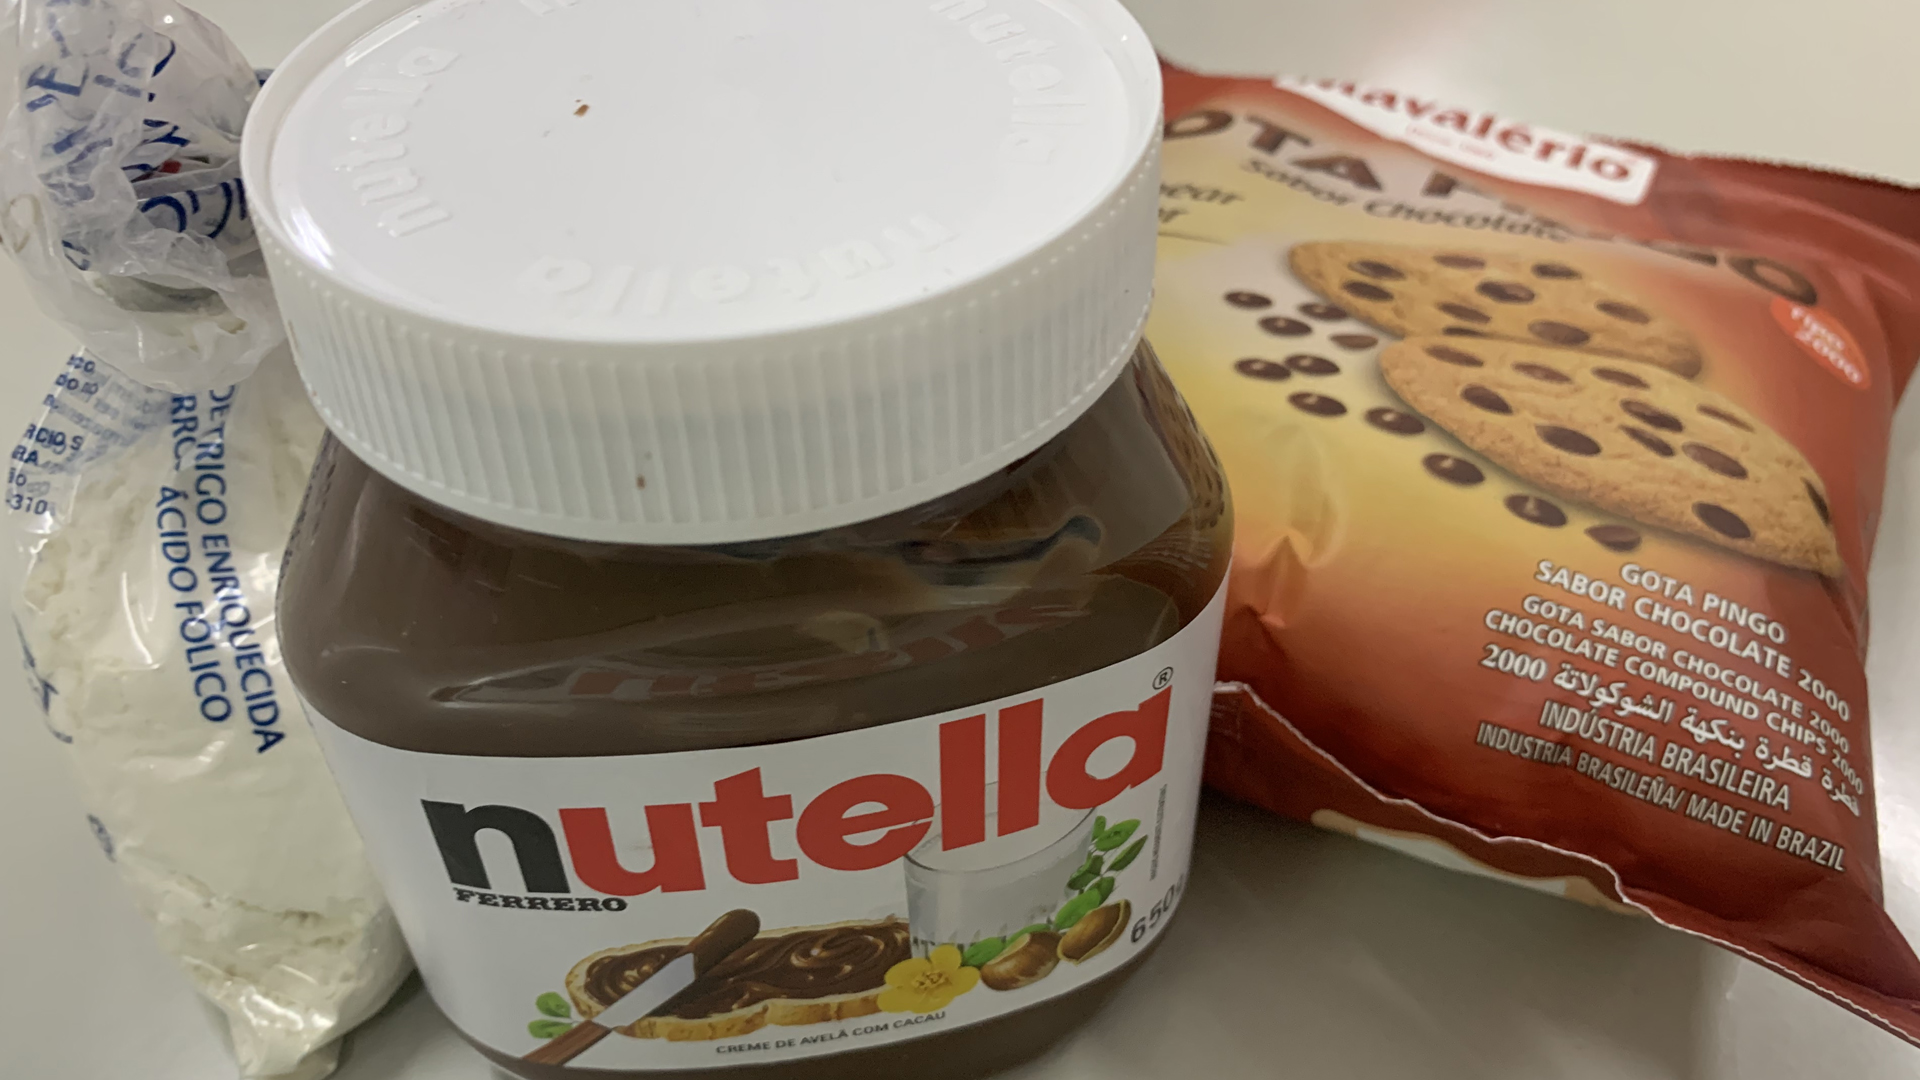 [Culinária: Cookie de Nutella - Integral 1 e 2]